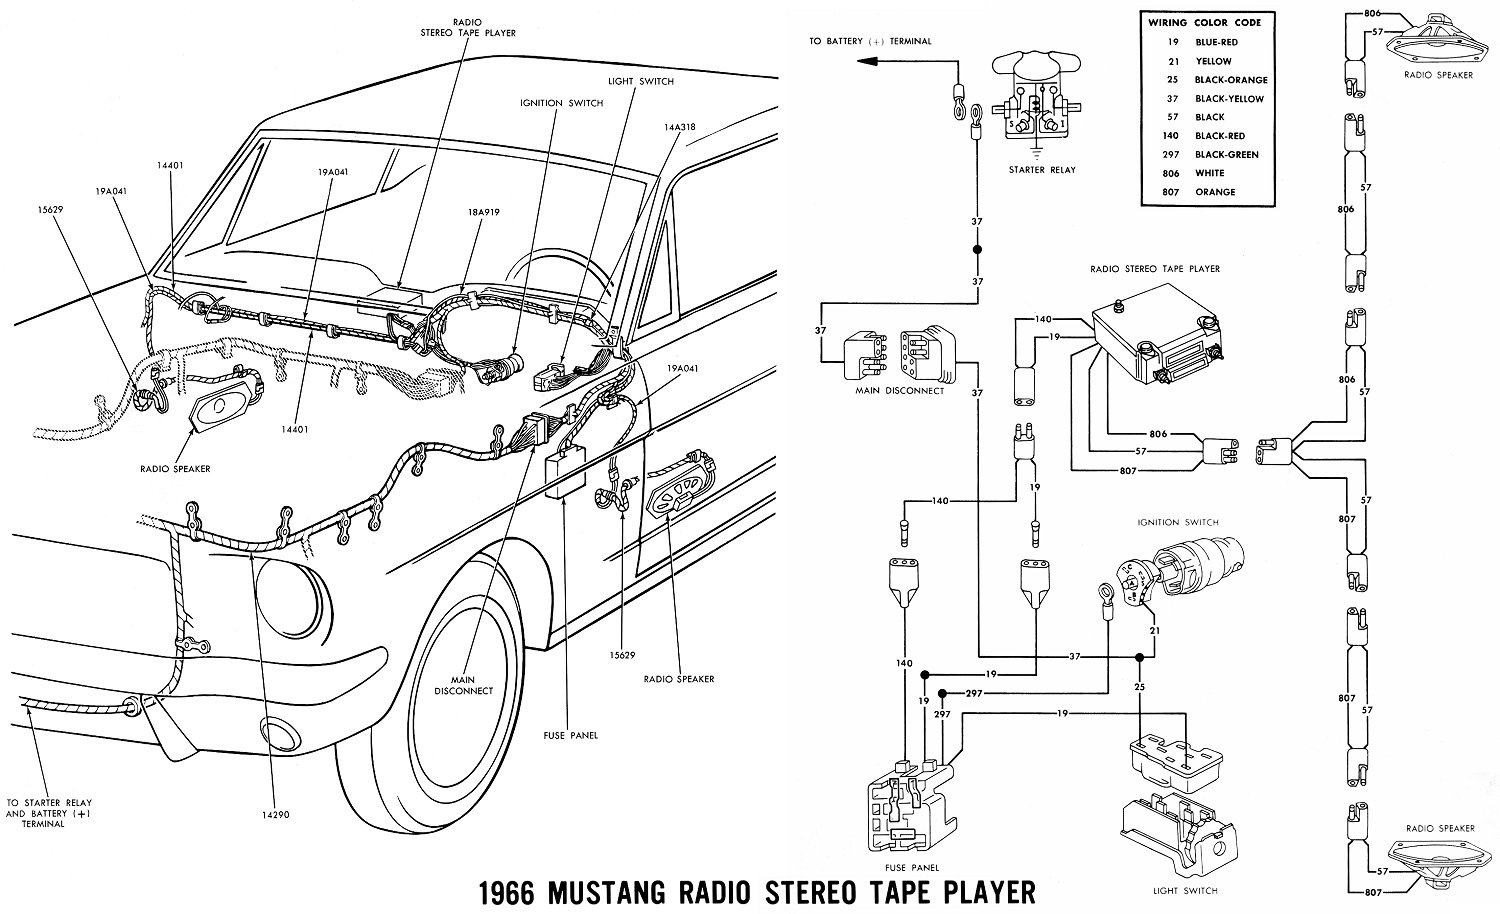 66 Wiring Harness Diagram Ford Mustang - Wiring Diagrams on corolla brake diagram, corolla toyota, corolla exhaust diagram, corolla air conditioning diagram, corolla turn signal wiring, corolla engine diagram, corolla wheels, corolla headlight bulb replacement, corolla suspension diagram, corolla belt diagram, corolla parts diagram, corolla steering diagram, corolla fuse diagram, corolla shock absorber, corolla transmission diagram,